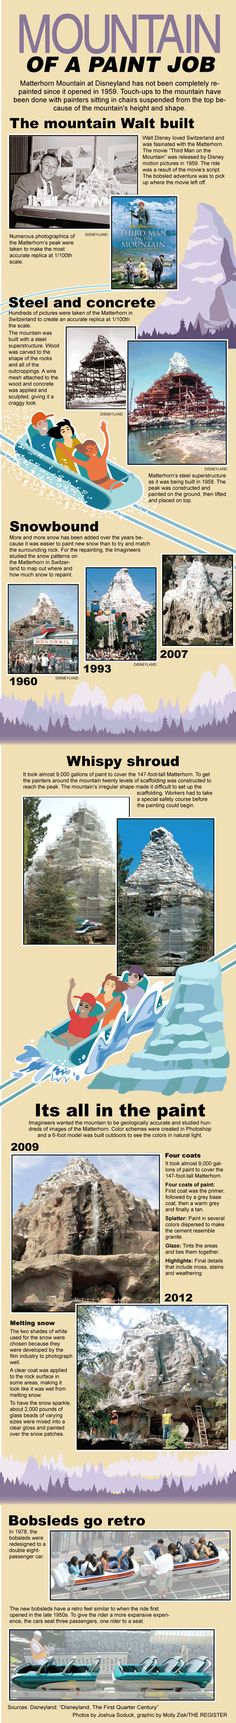 How do you paint a 147-foot-tall mountain? Disneyland gave the Matterhorn fresh coat of paint. The mountain was built in 1959 and has only had touch-up jobs over the years. Imagineers looked to the original Matterhorn in Switzerland when choosing colors and snow patterns. The snow glistens - how did they achieve that look? Read and see.